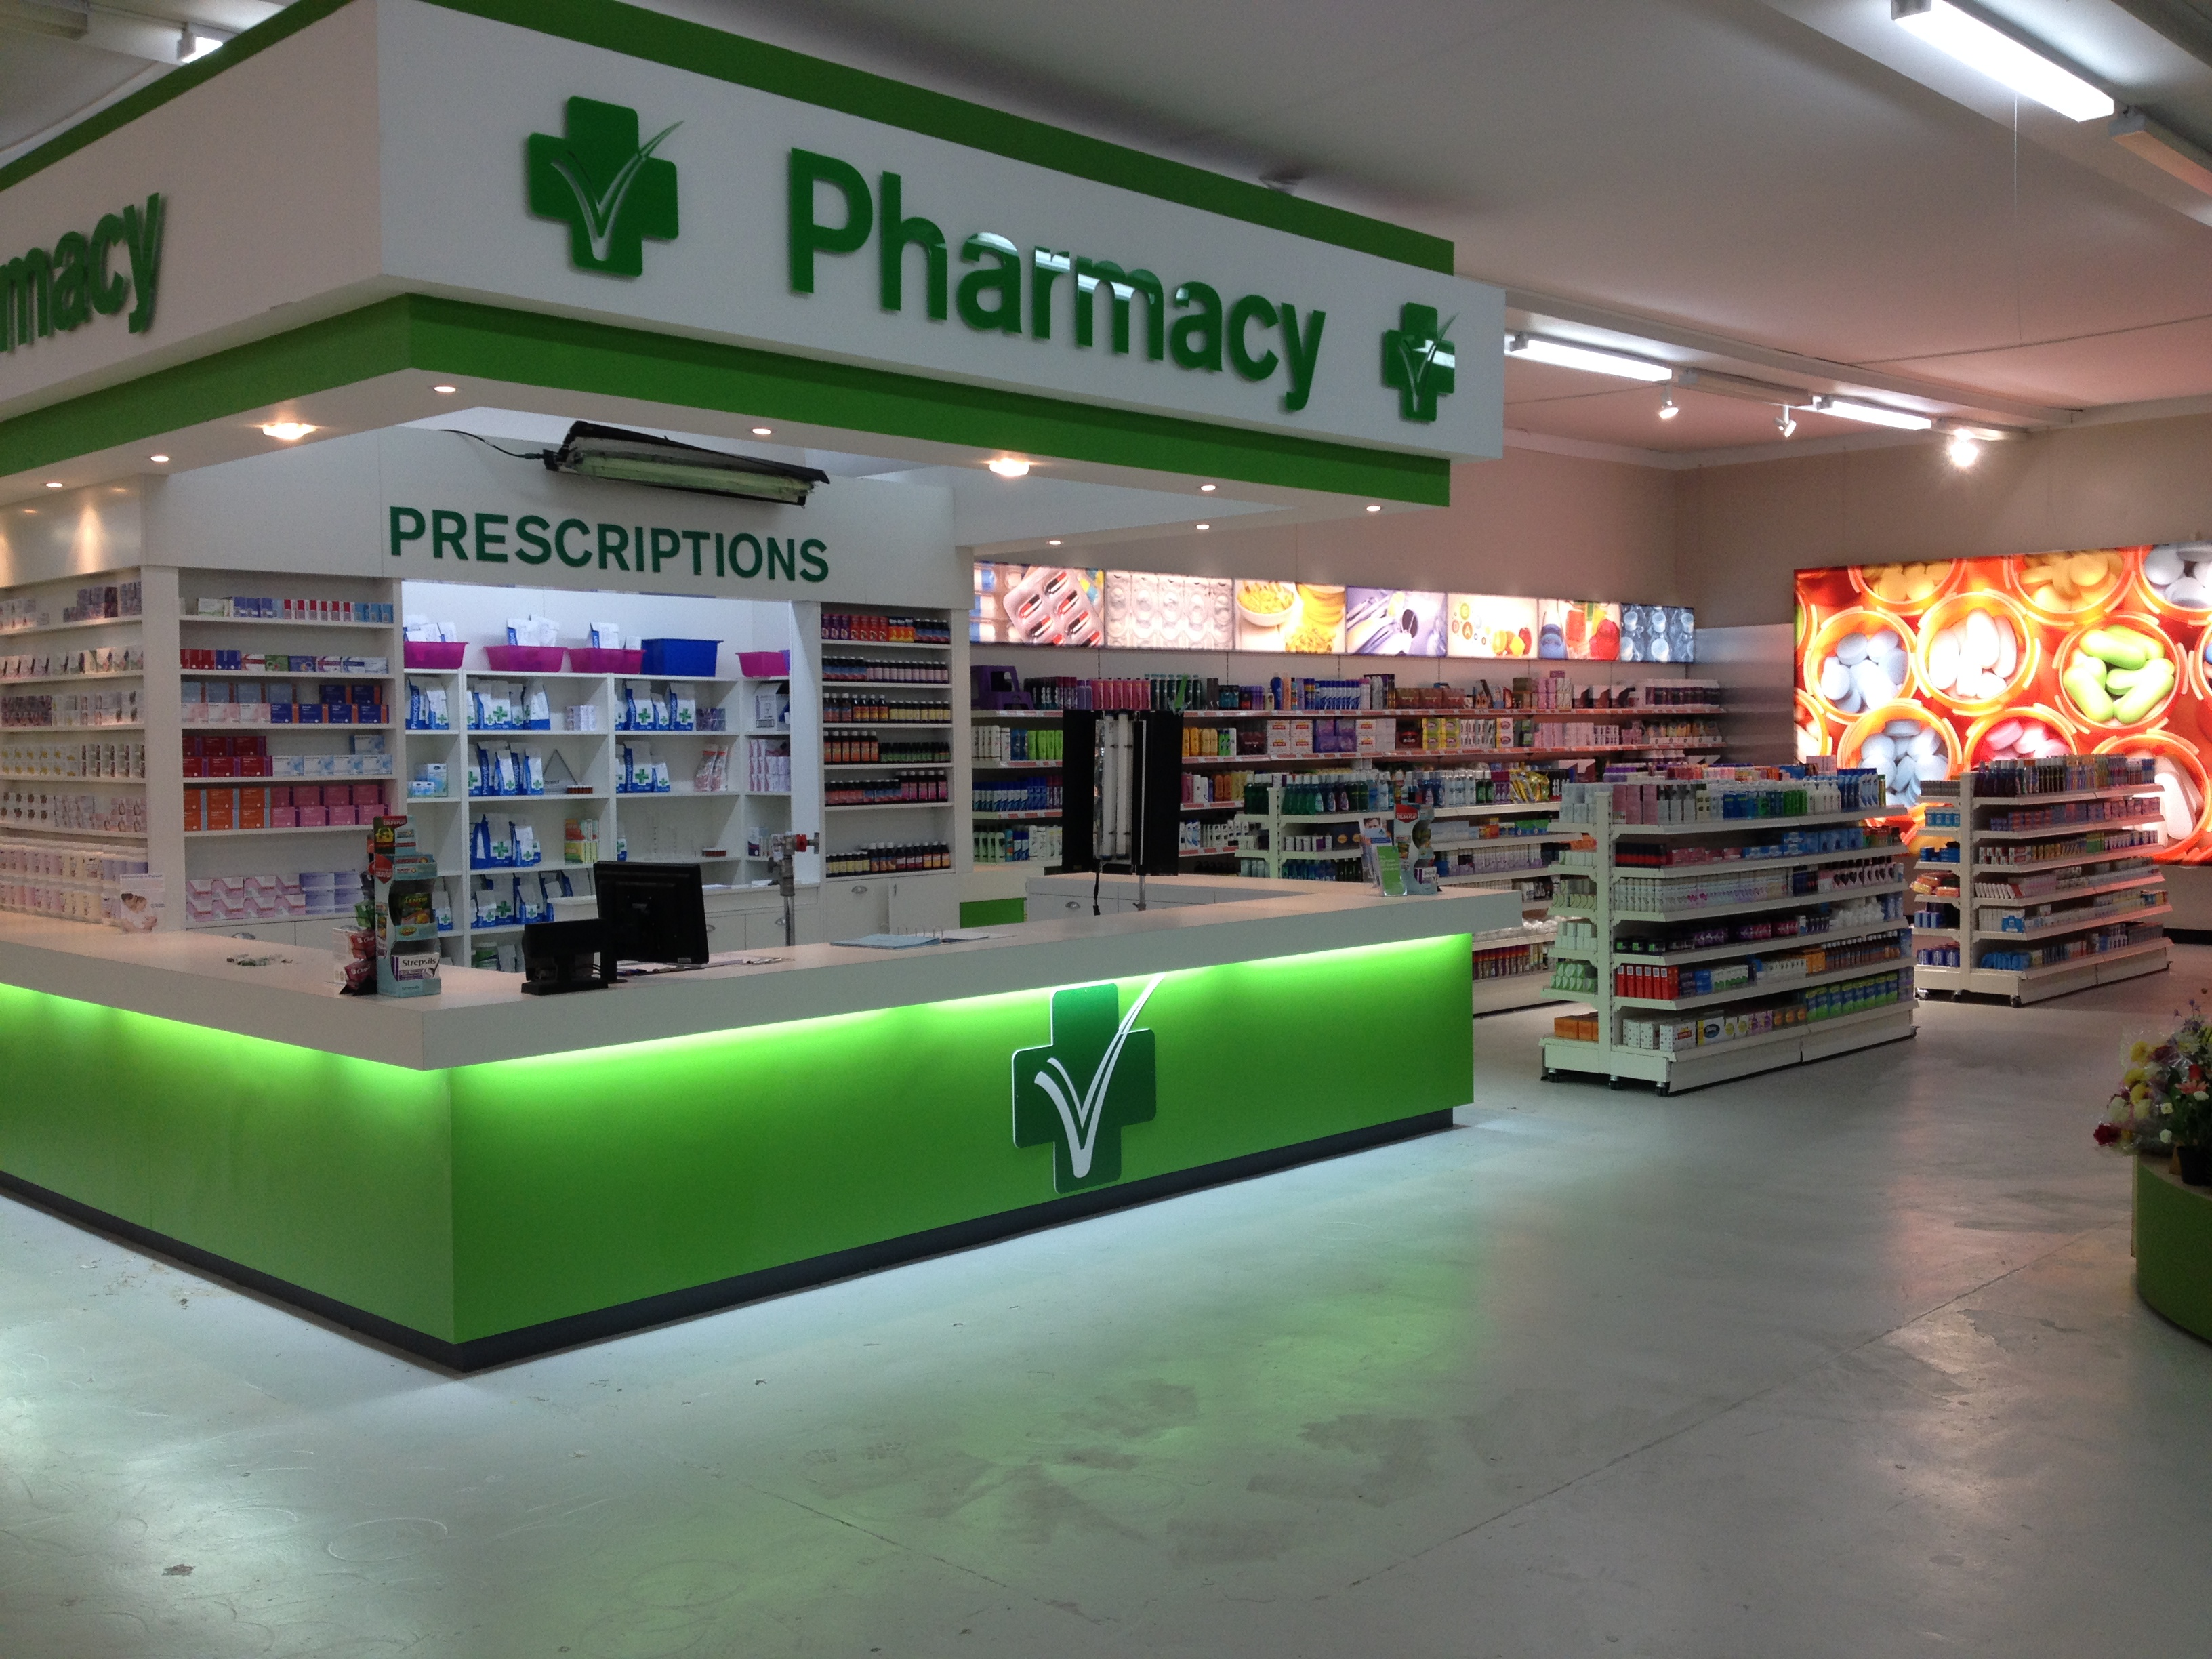 Trollied pharmacy set